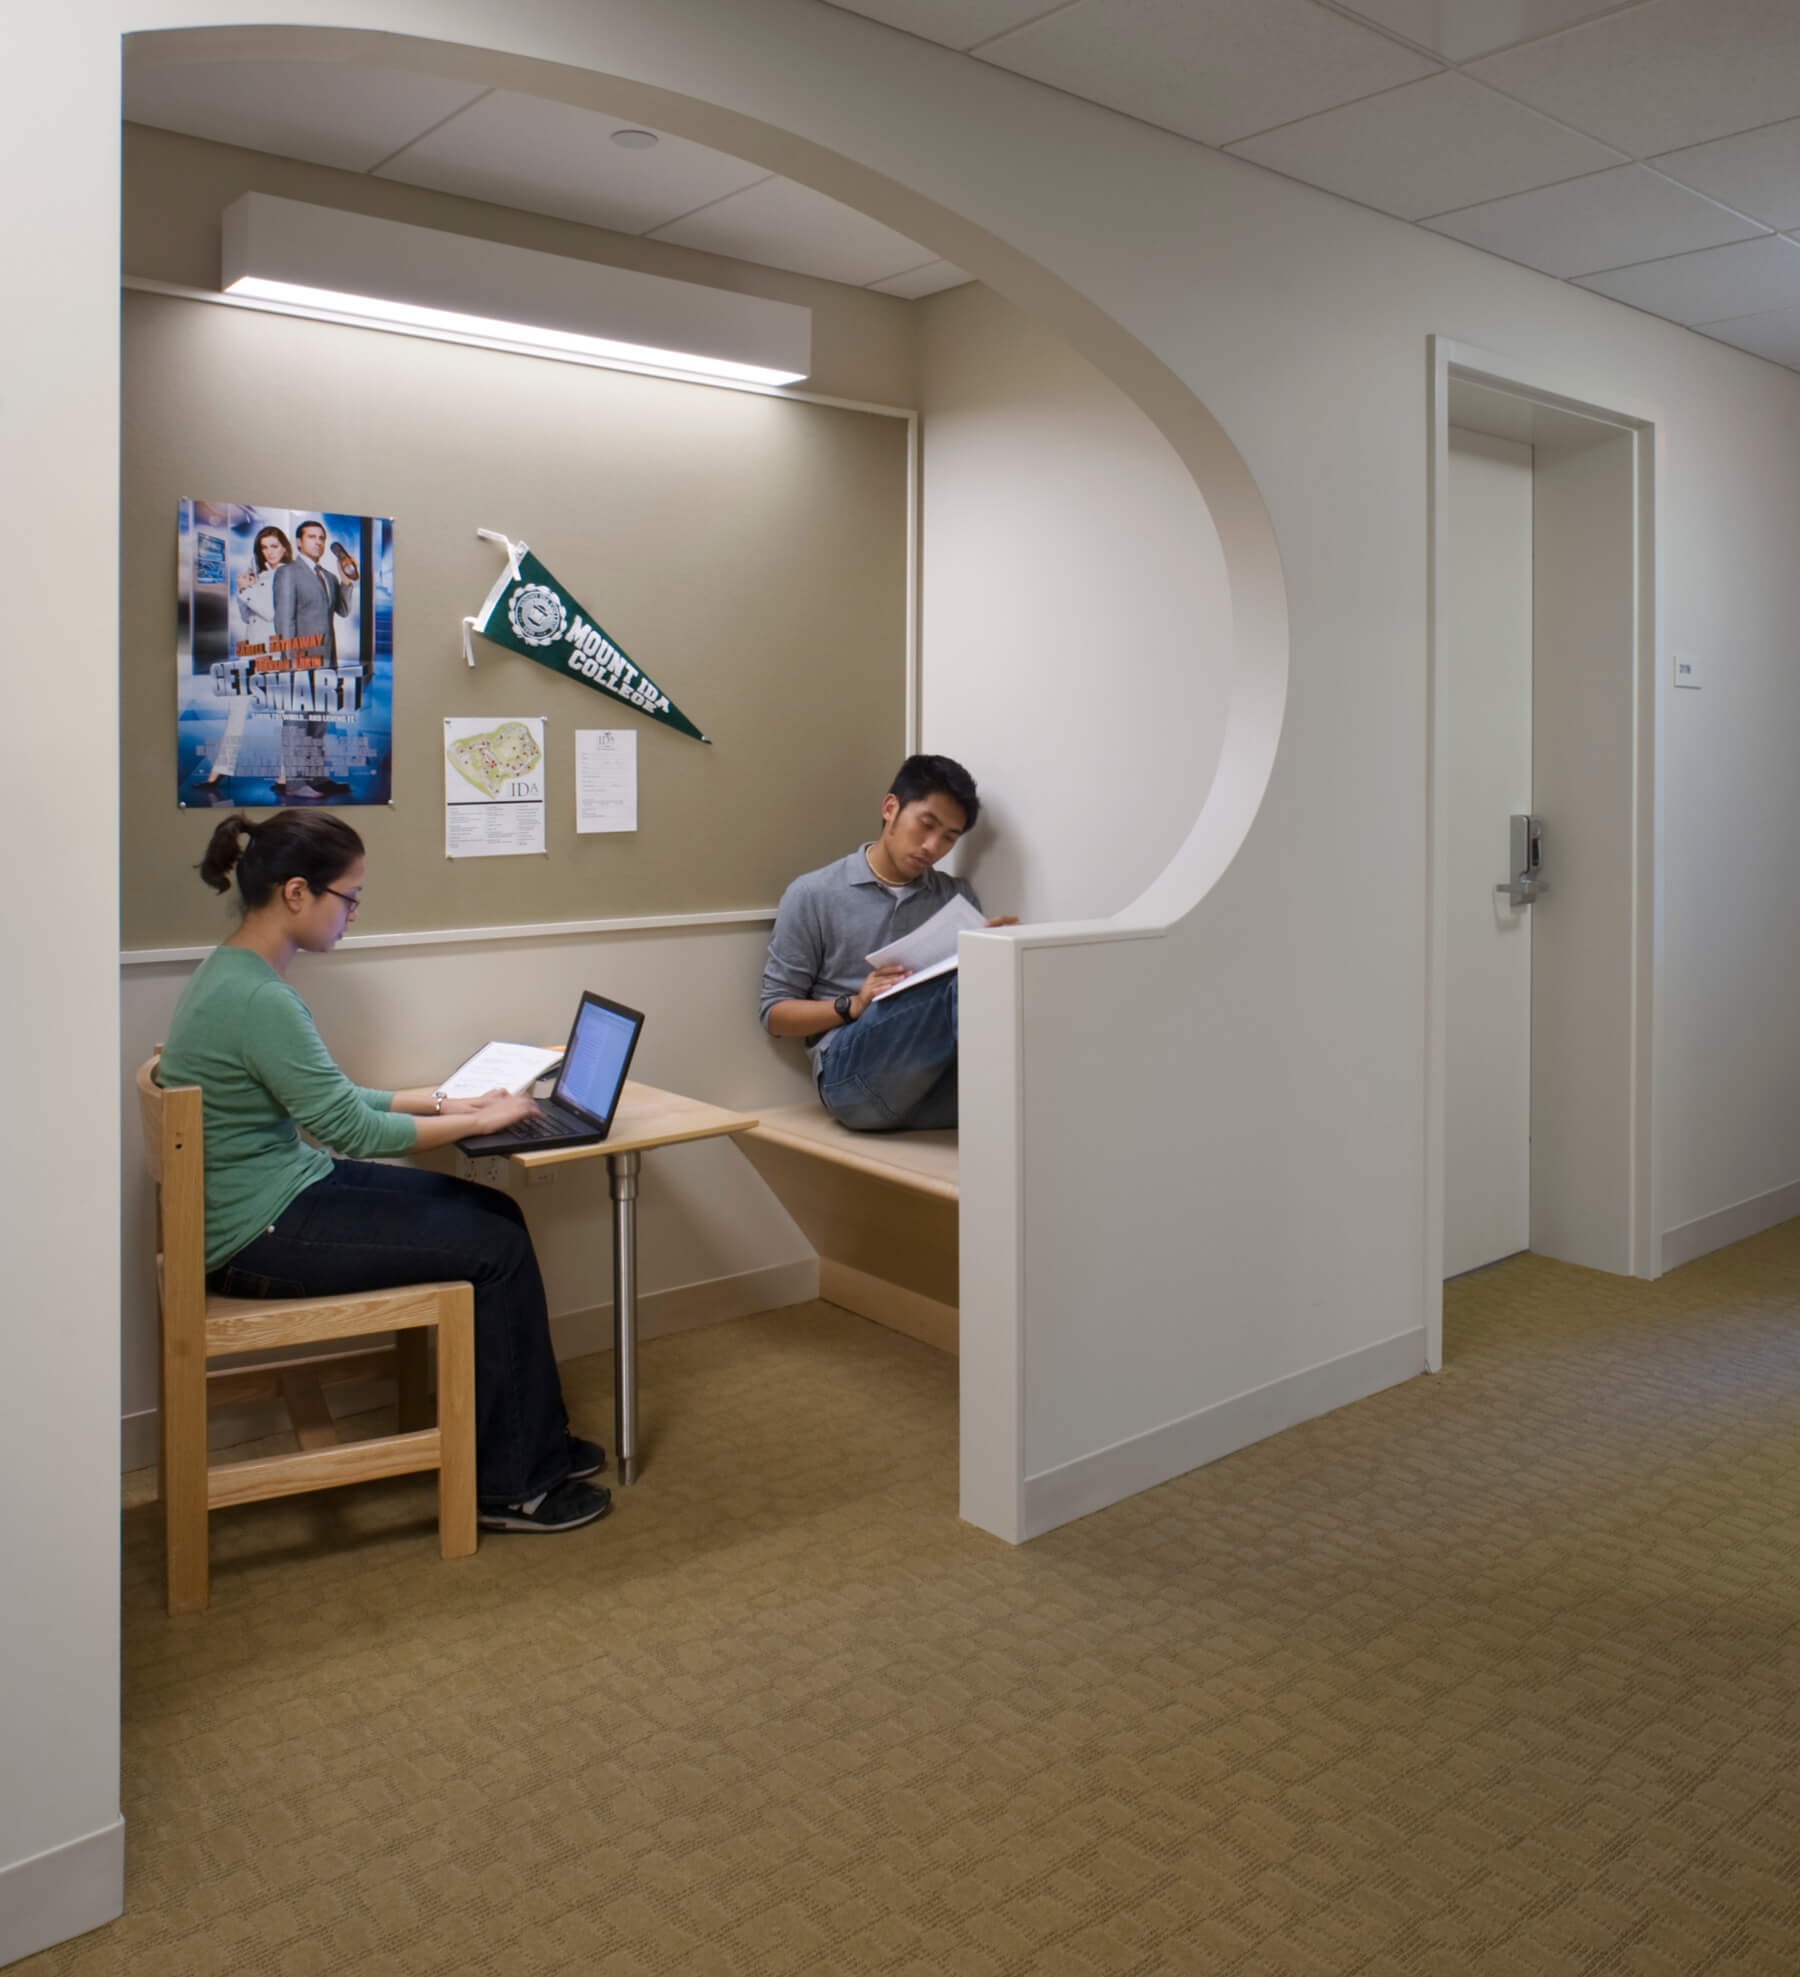 Two students in a small study nook, with posters, chairs and a desk.